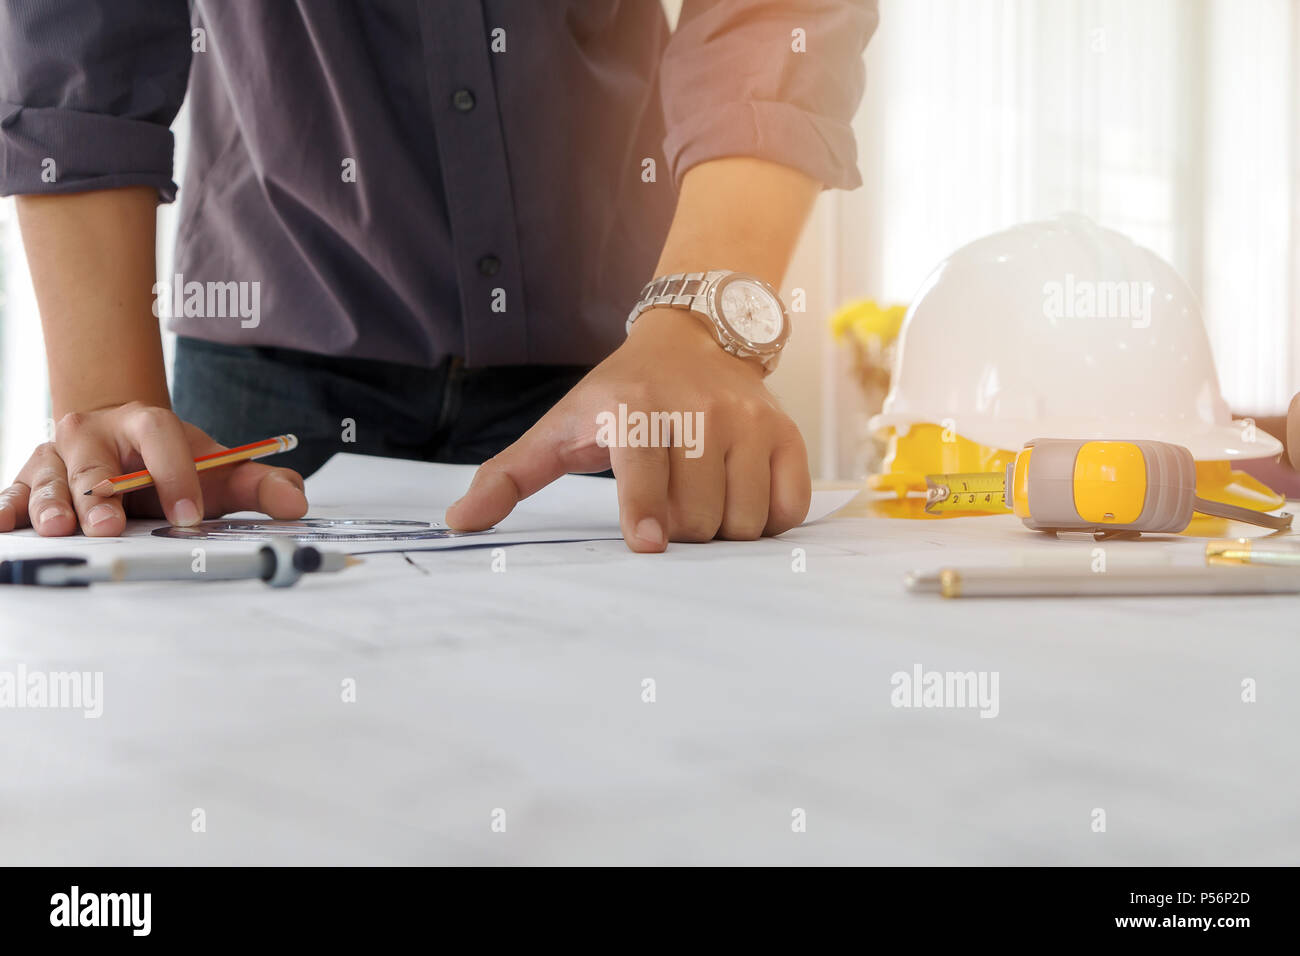 Architect or engineer using pencil and protractor working on blueprint, architectural concept - Stock Image